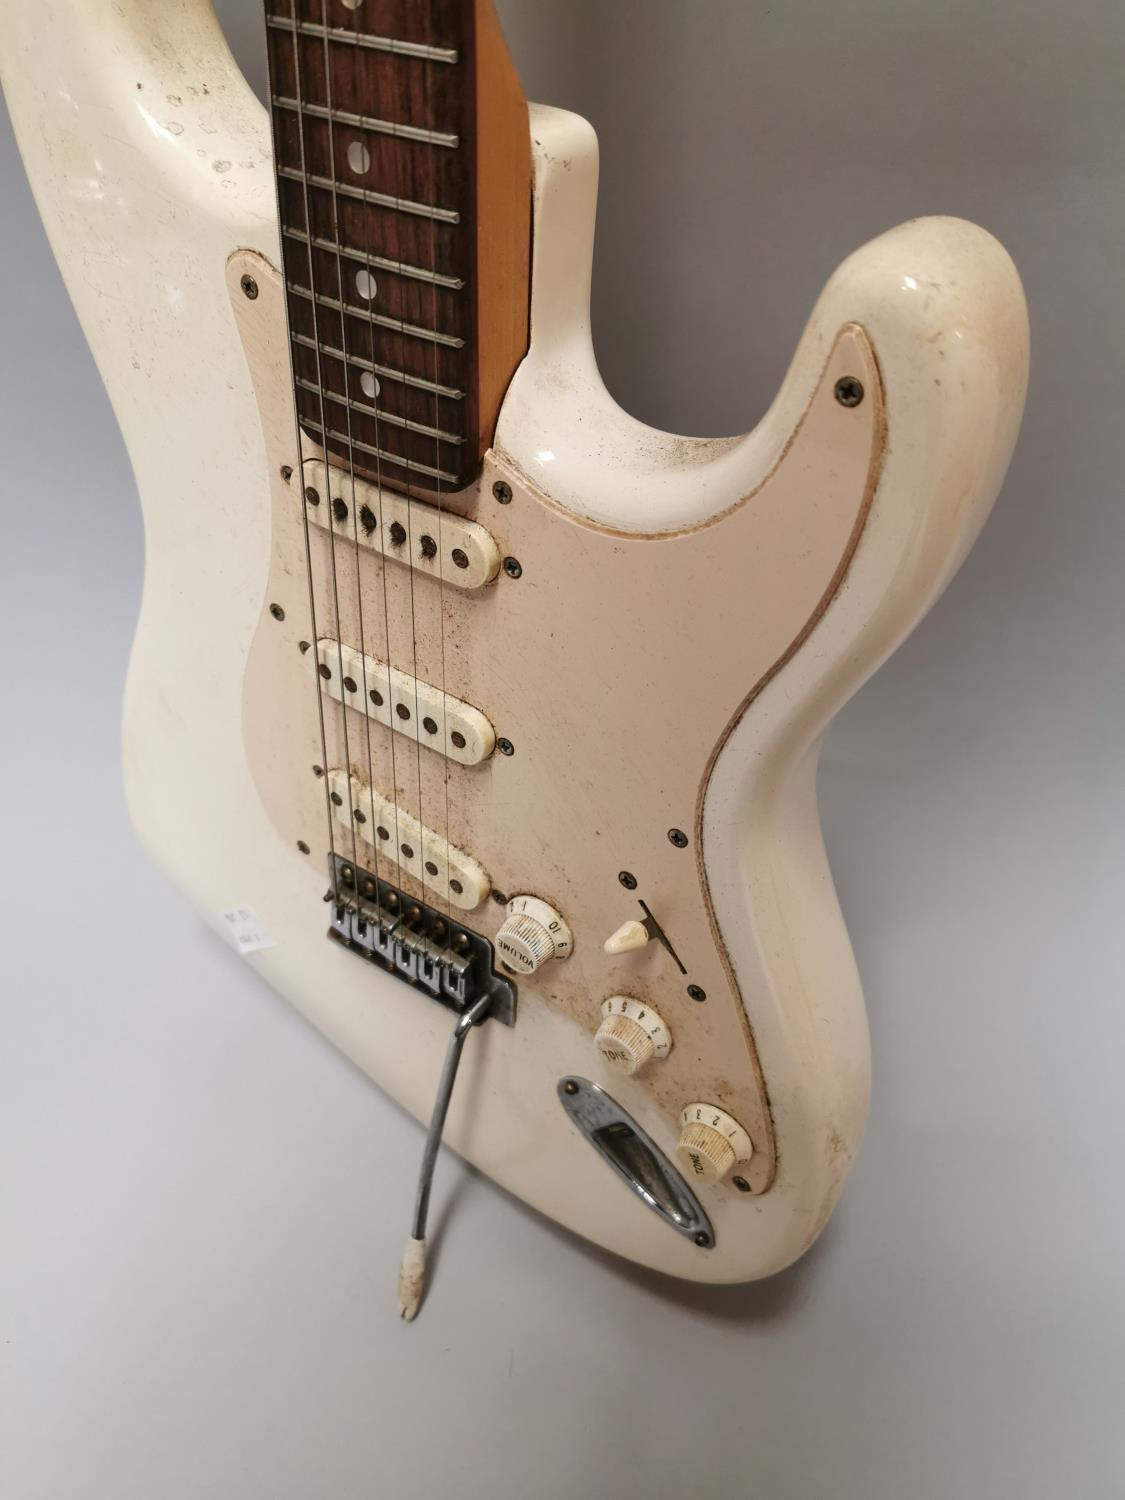 Squire Fender electric guitar - Image 5 of 5